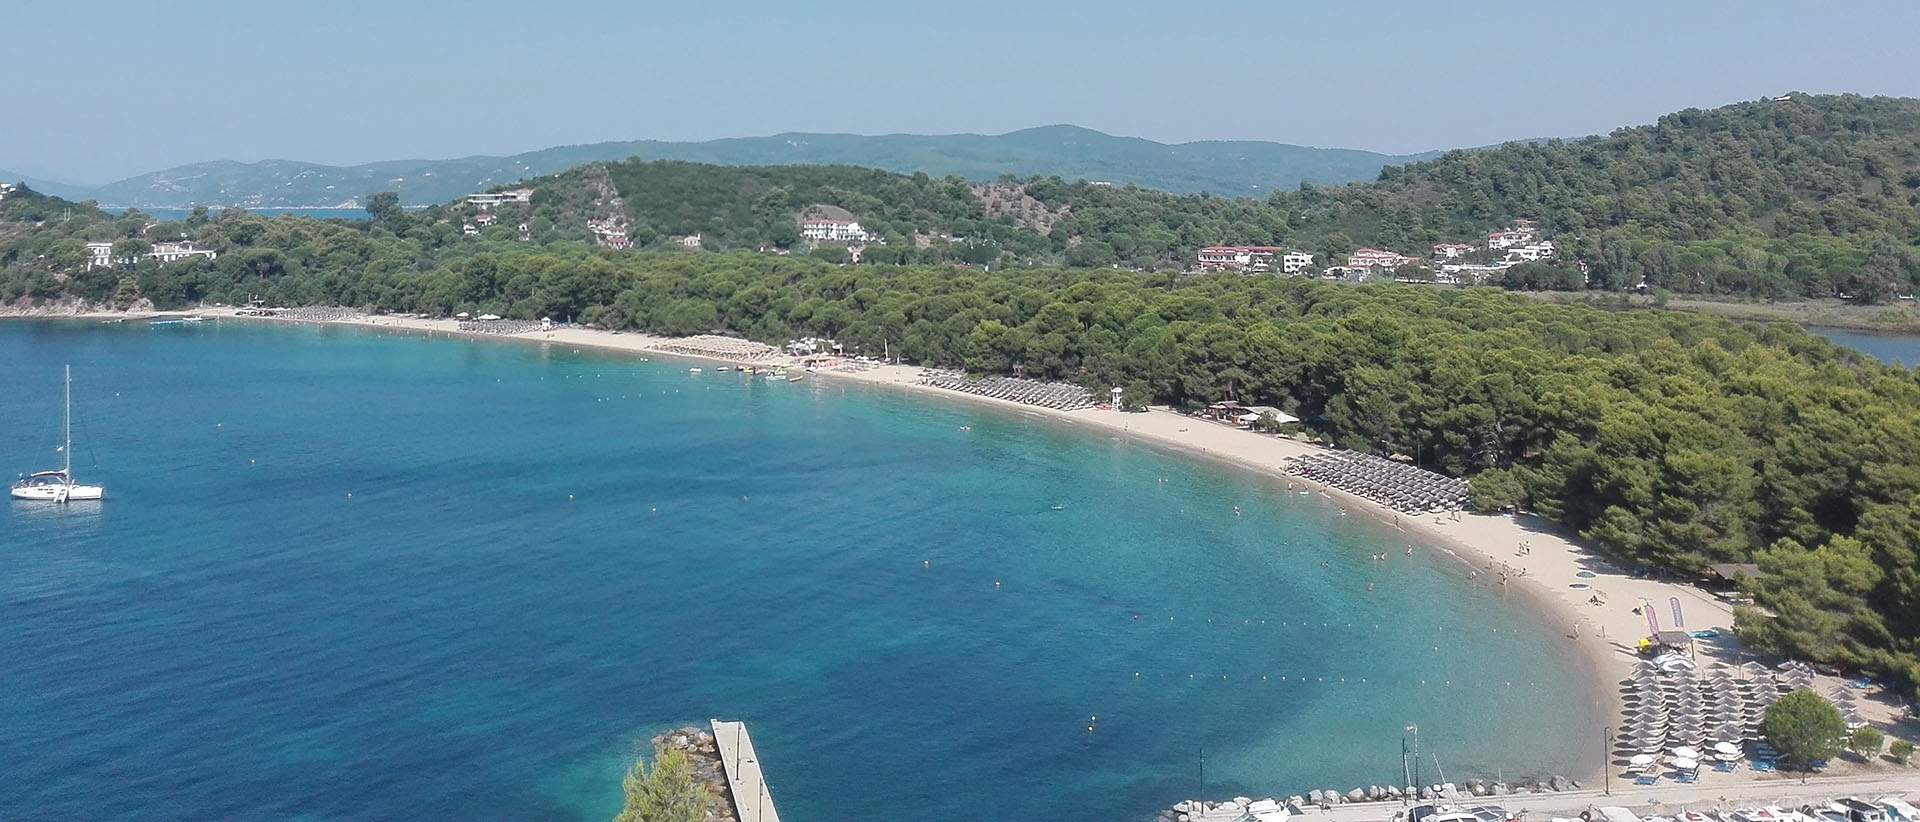 An impressive verdant scenery on the most famous beach of Skiathos.